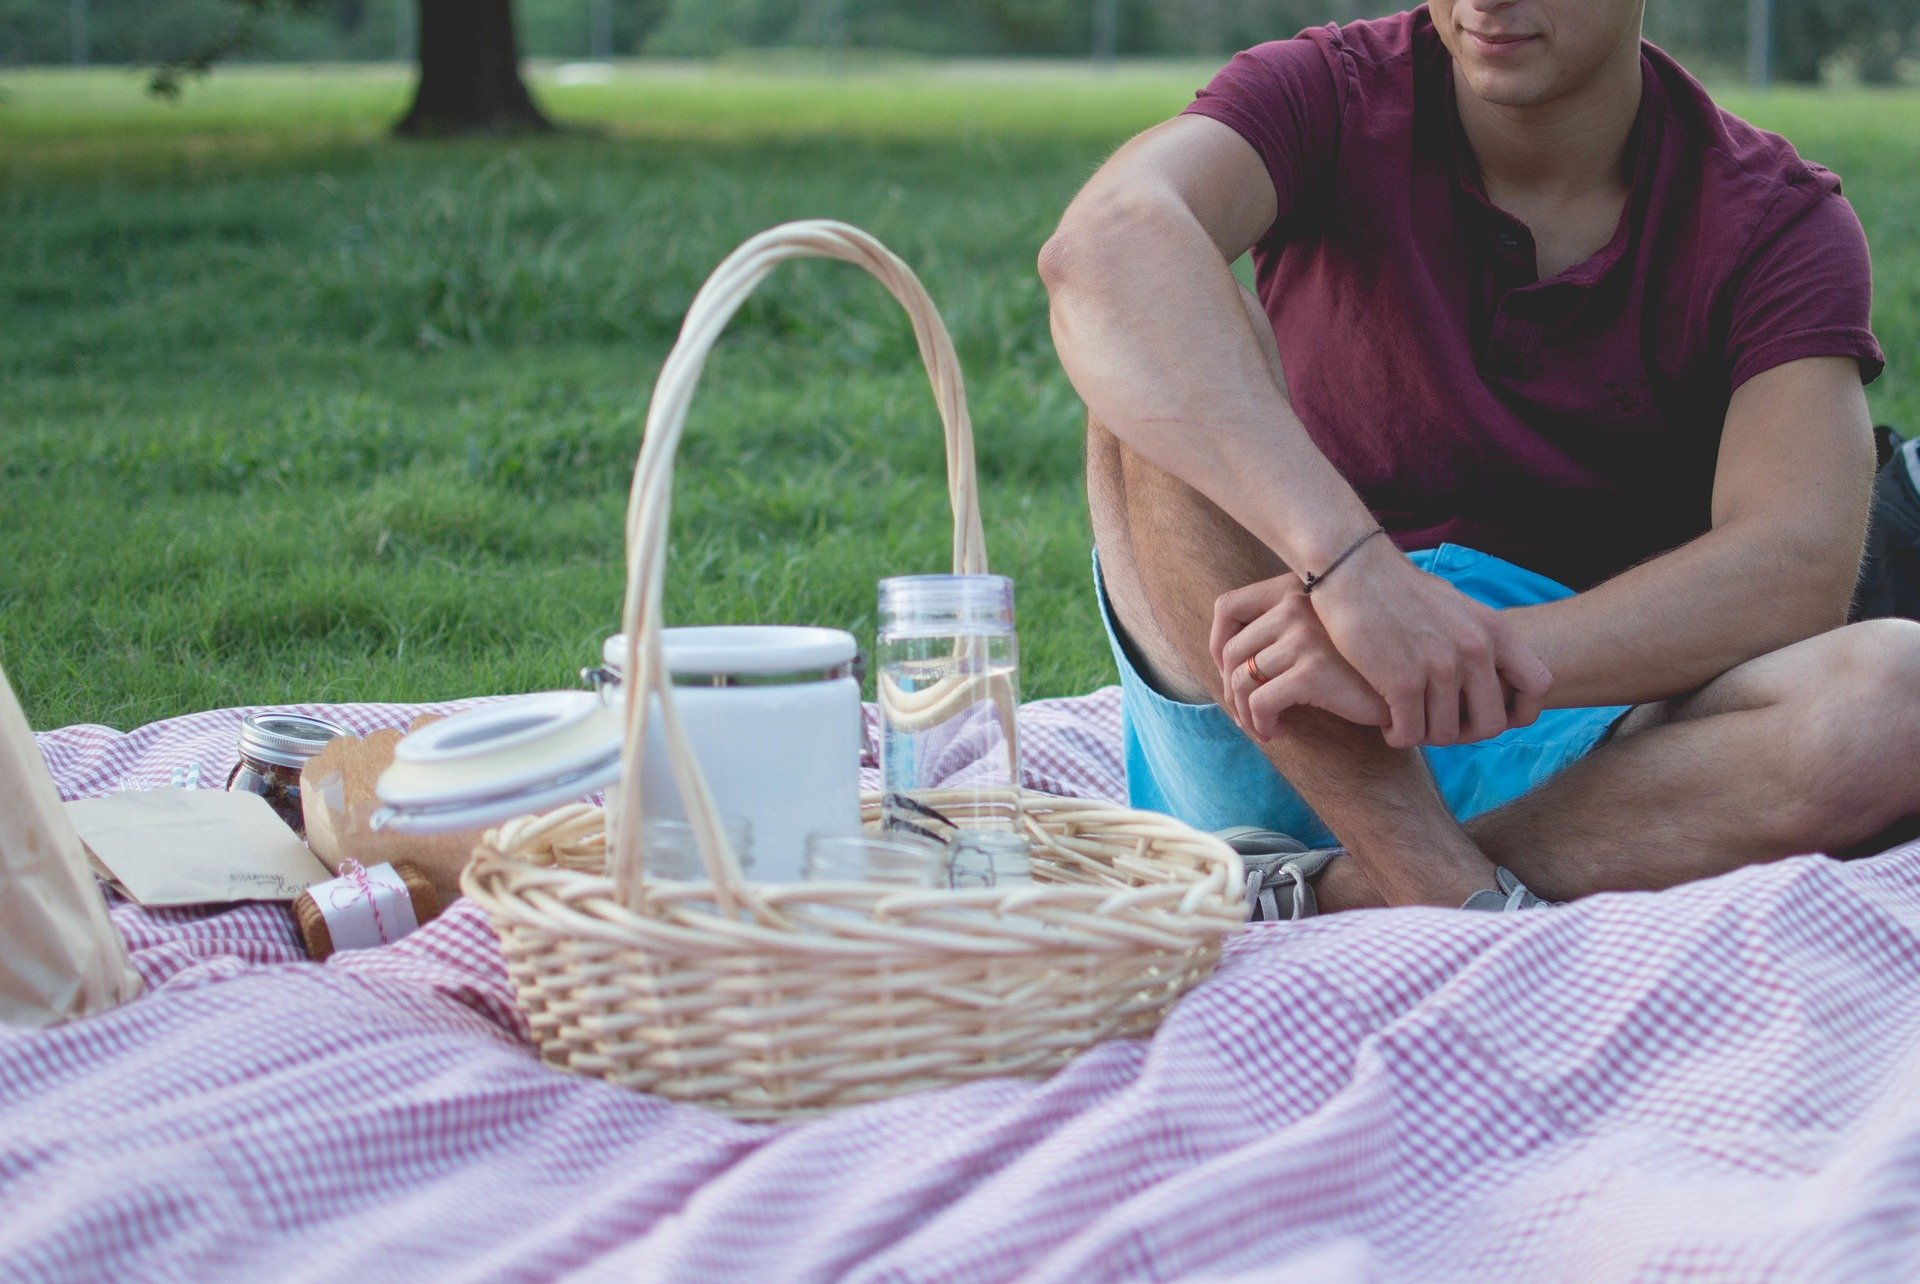 Man in blue shorts sits on picnic blanket and gazes on basket of glasses and food.